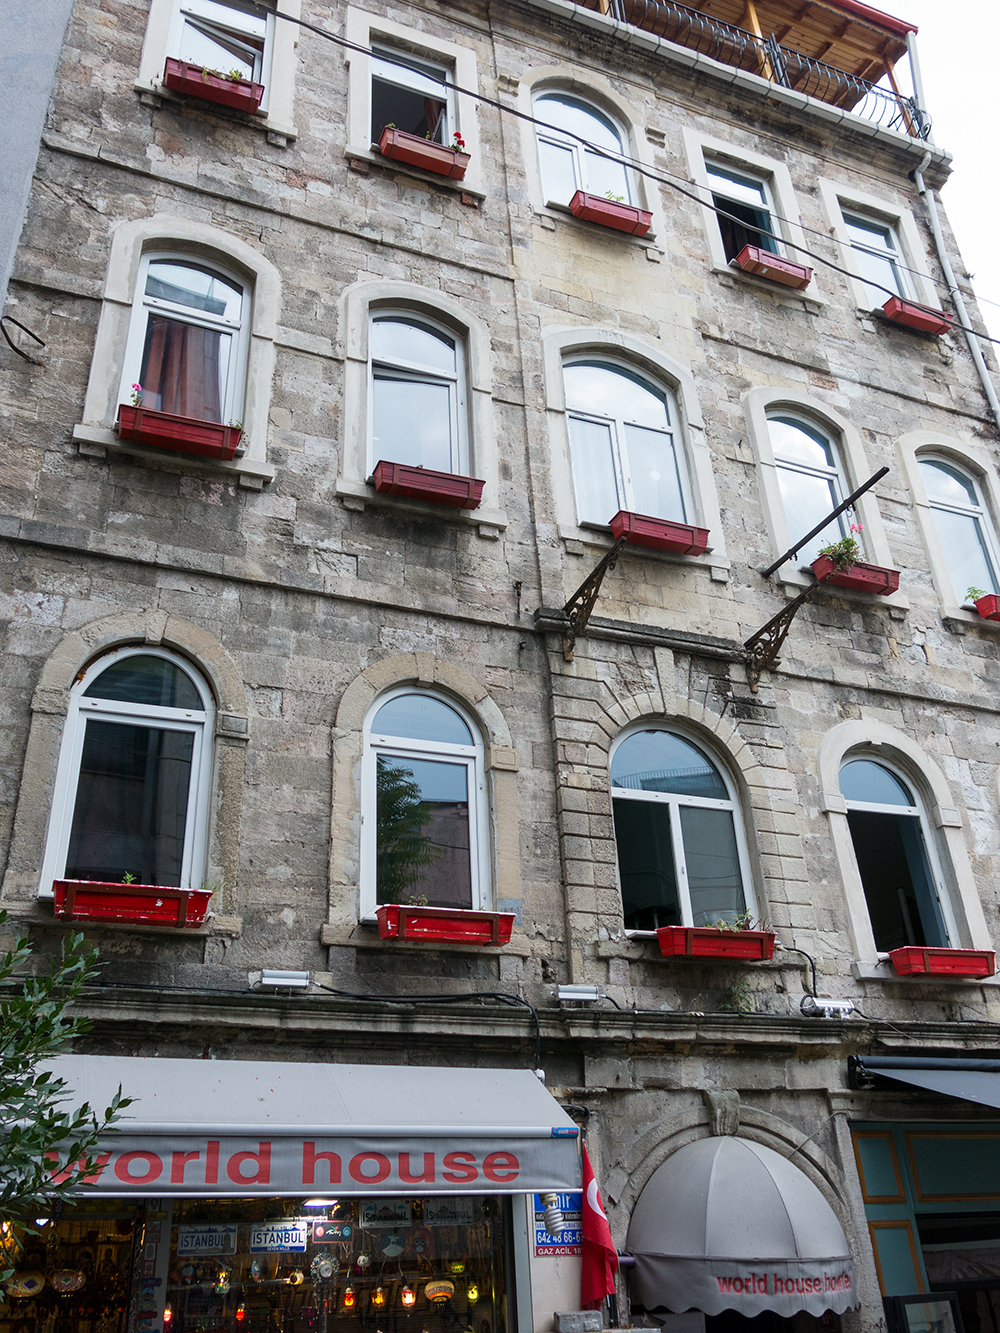 Hostel review world house hostel in istanbul for Amida house istanbul